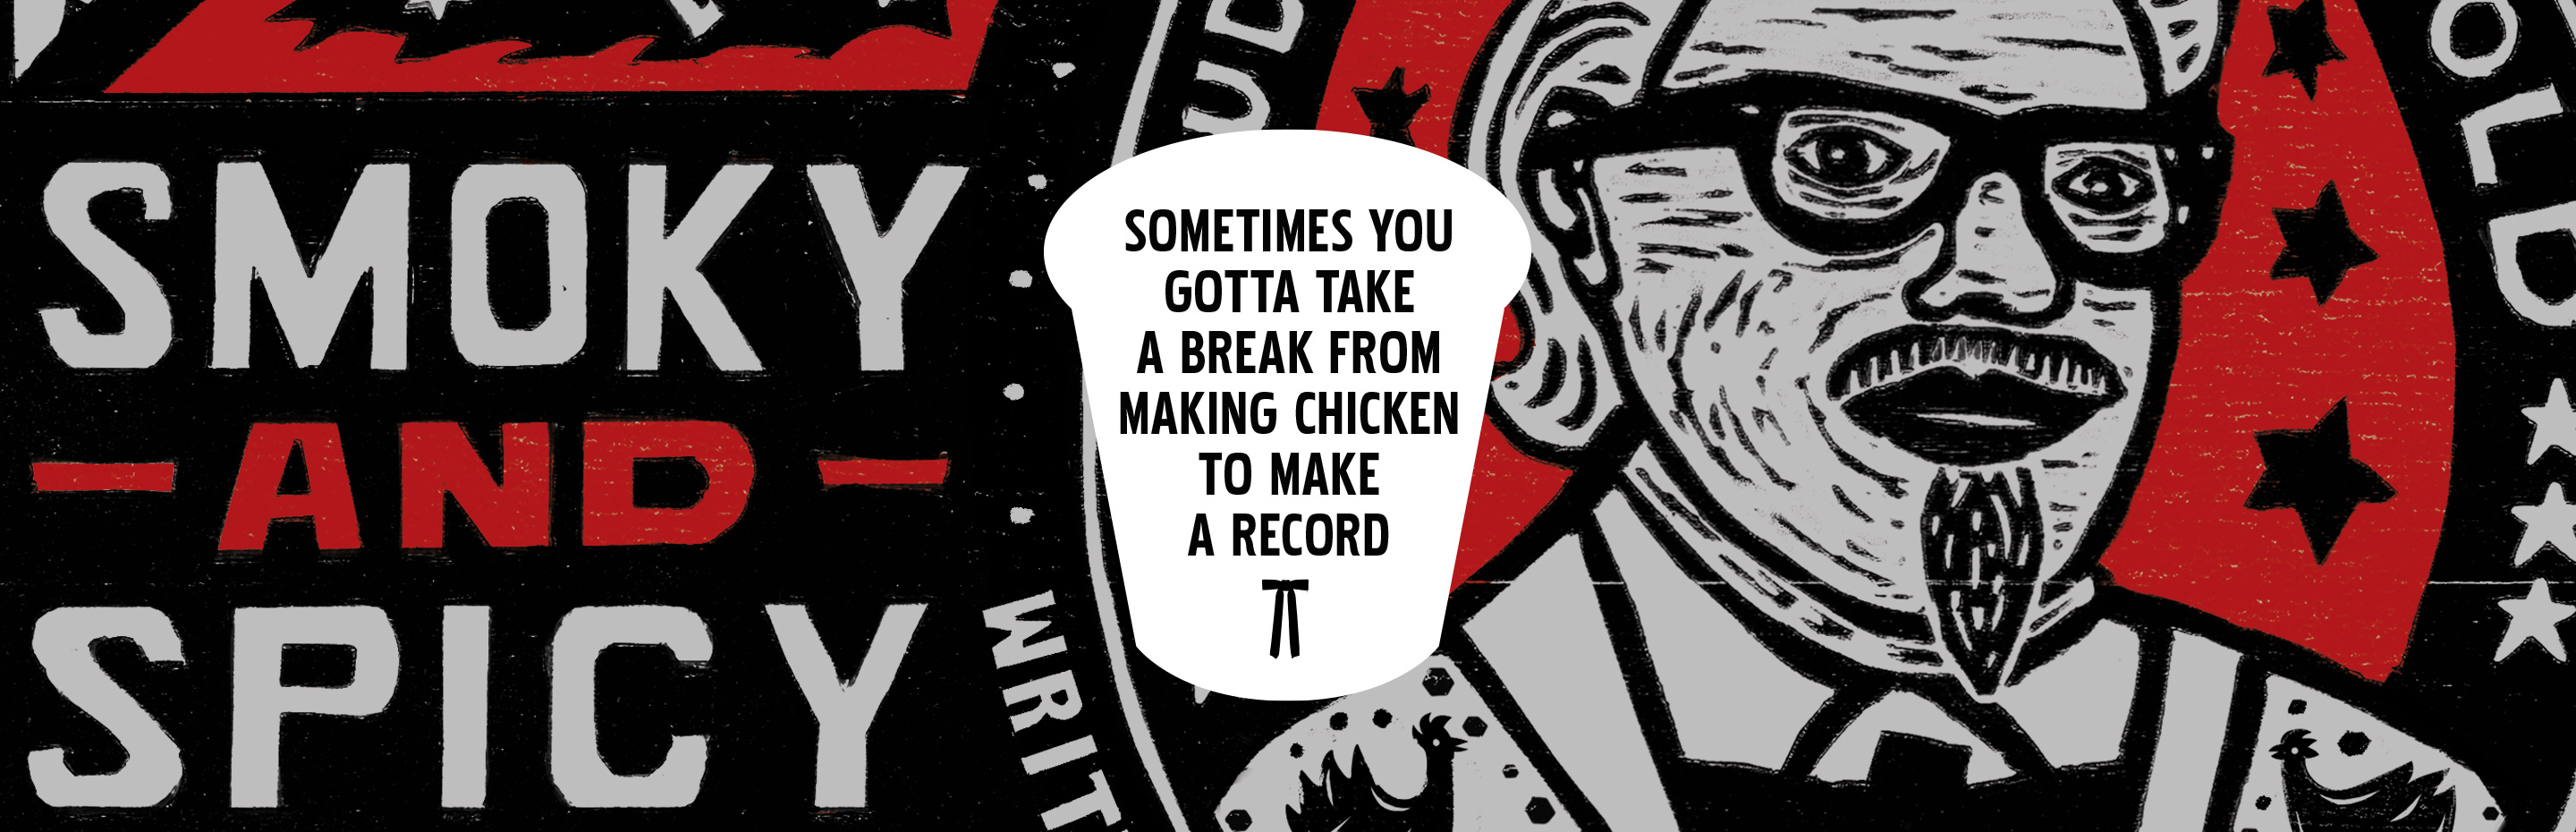 Colonel Sanders Takes A Break From Making Chicken, To Make A Chicken Inspired Record